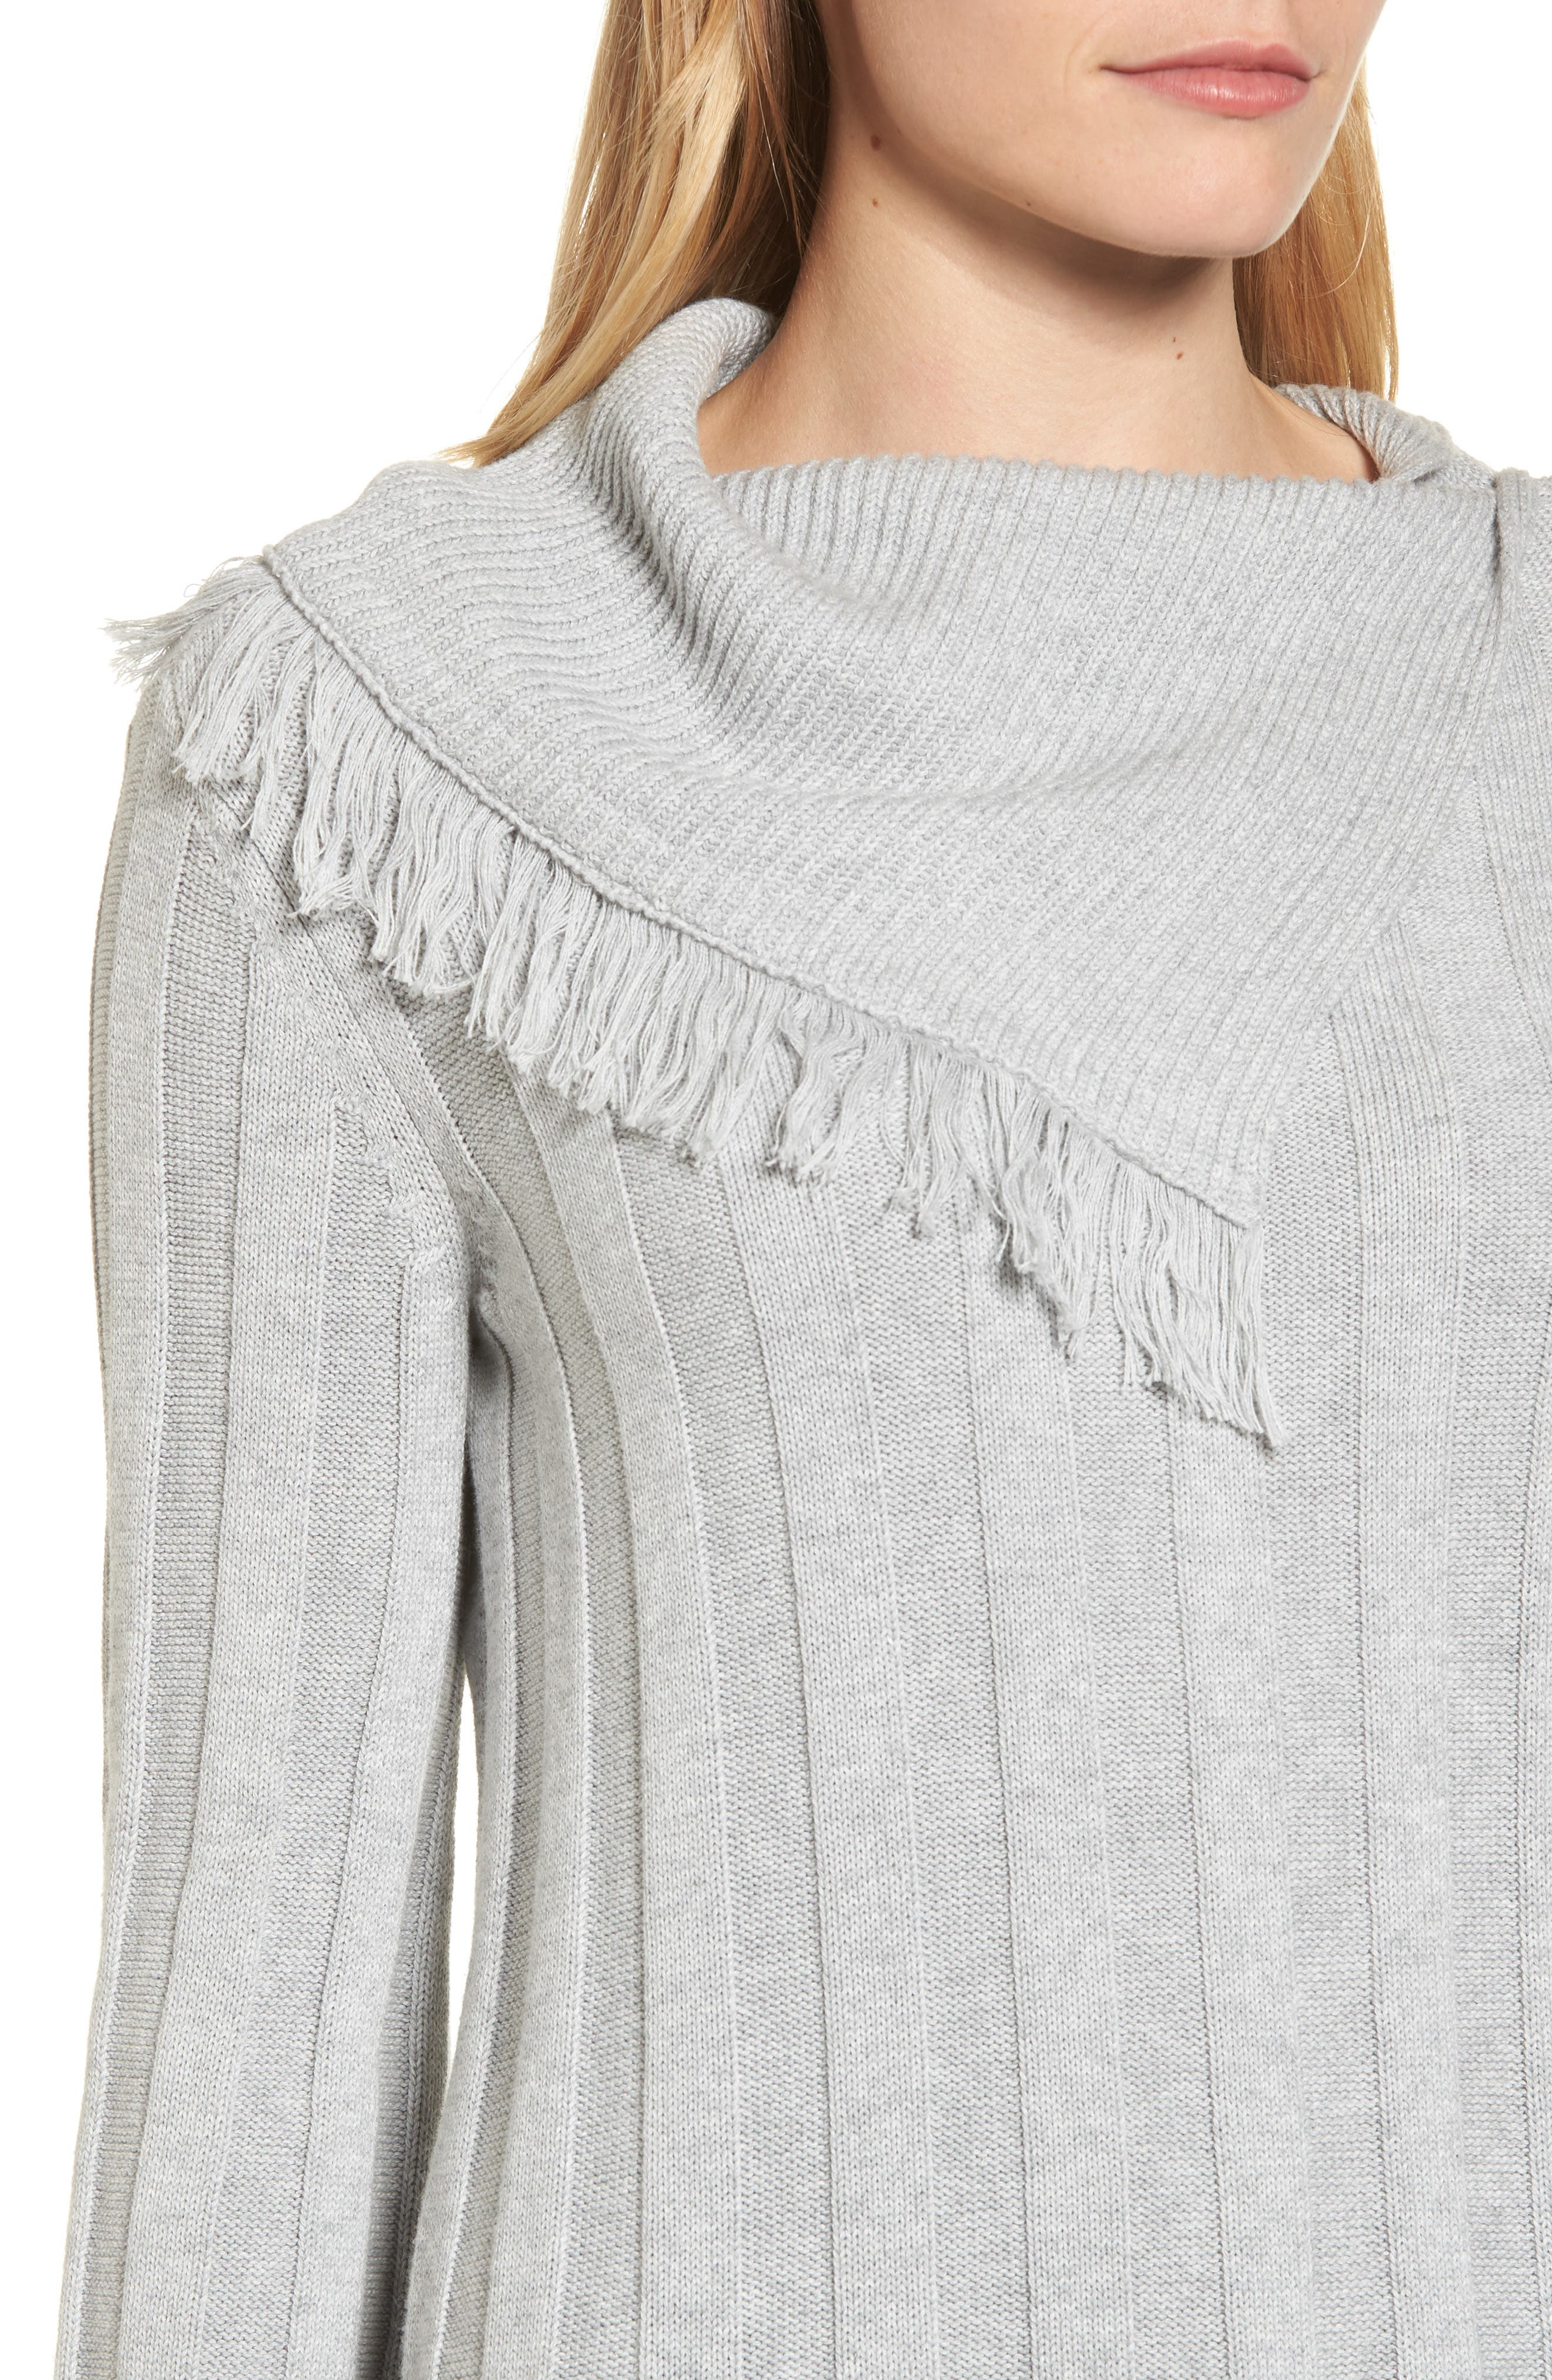 Fringe Cowl Neck Sweater,                             Alternate thumbnail 4, color,                             Grey Heather